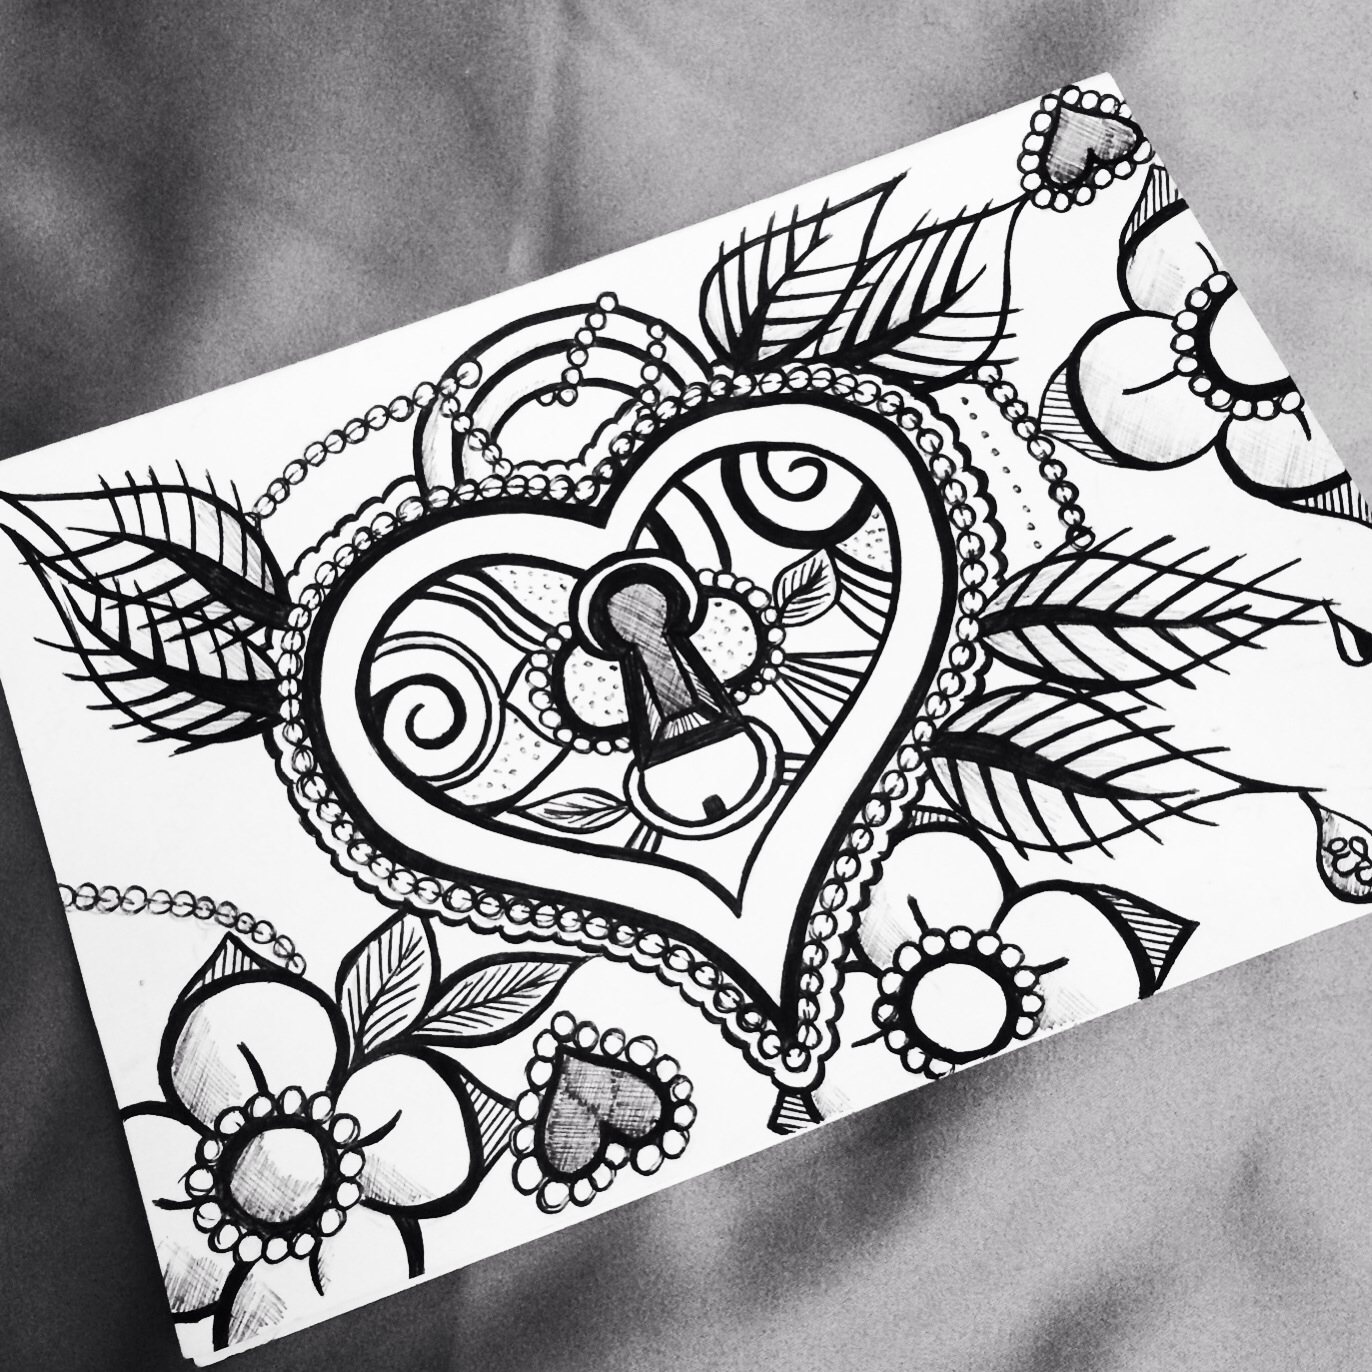 1372x1372 Heart Locket Drawing . Doodles And Such. Heart